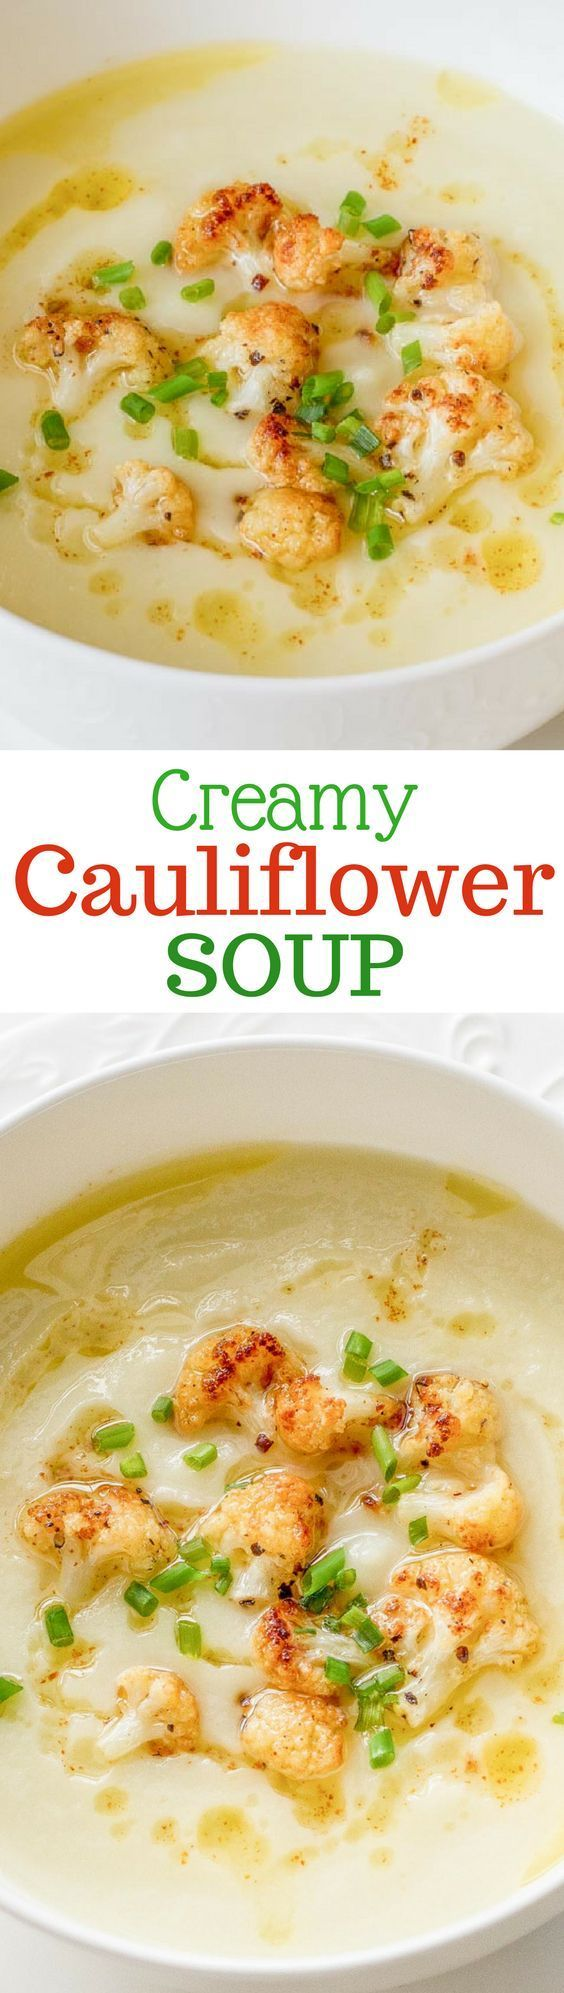 Creamy Cauliflower Soup ~ this soup is anything but boring! Deliciously fresh, healthy, creamy and satisfying ~ from www.savingdessert.com